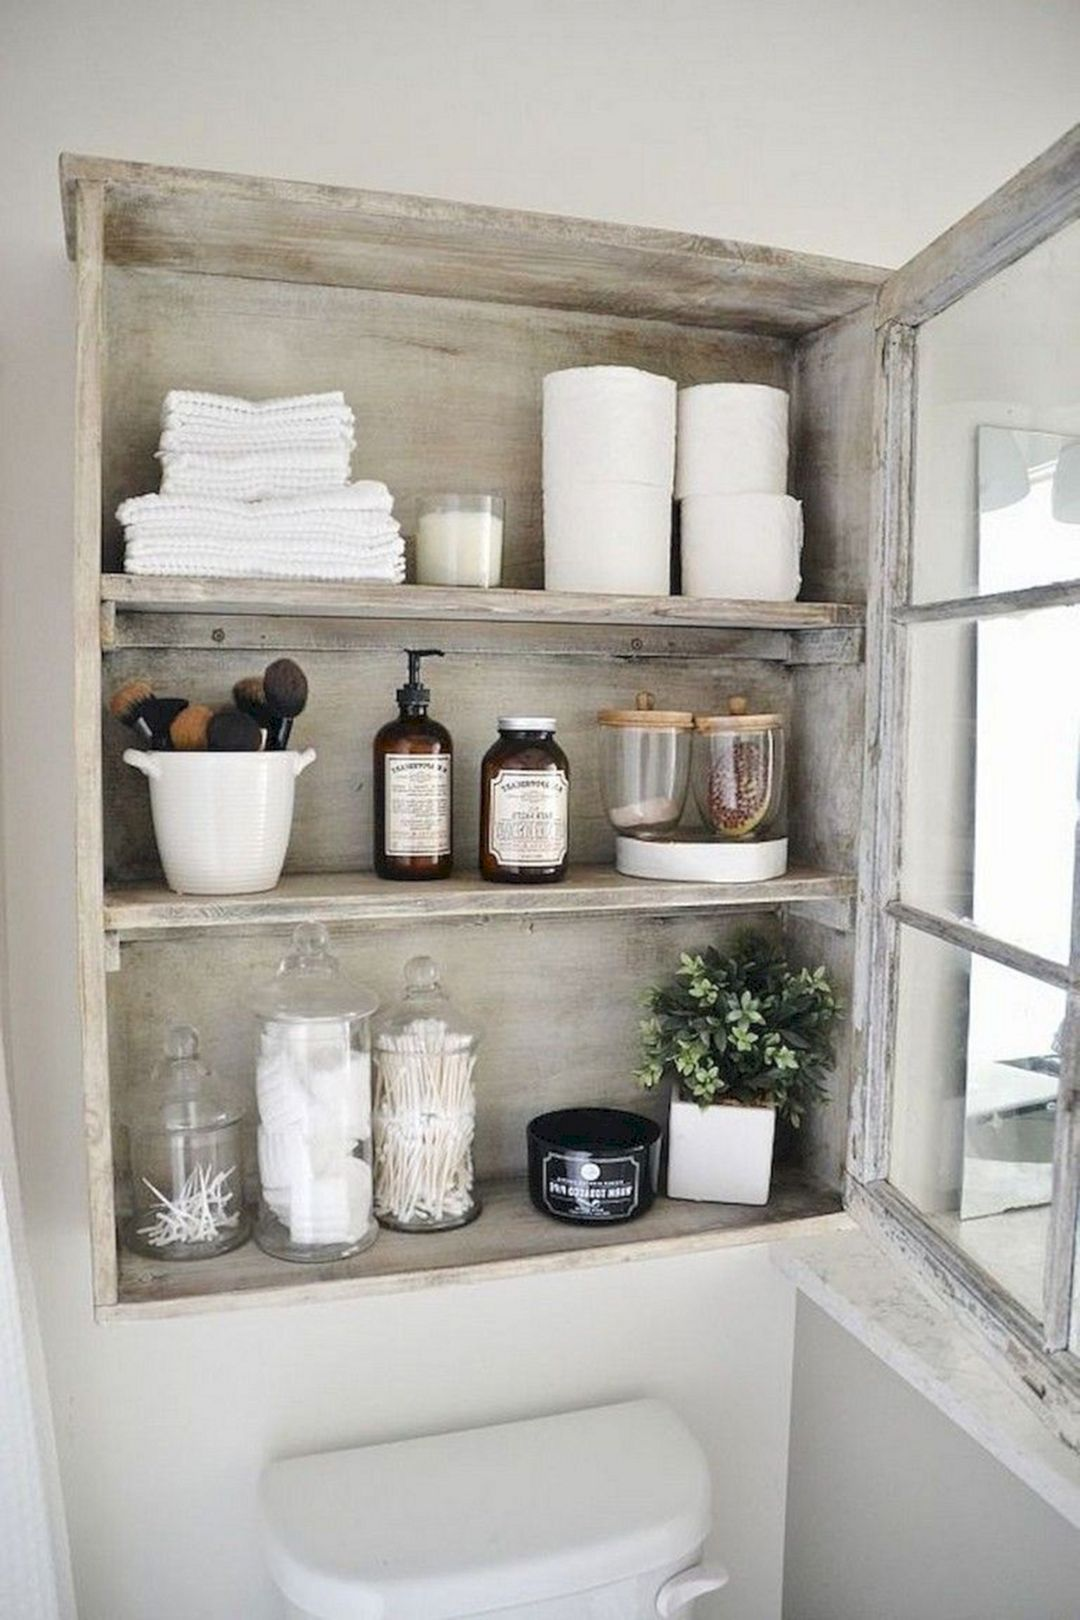 Rustic Diy Bathroom Shelf Ideas Small Bathroom Storage Rustic Storage Cabinets Shabby Chic Cabinet